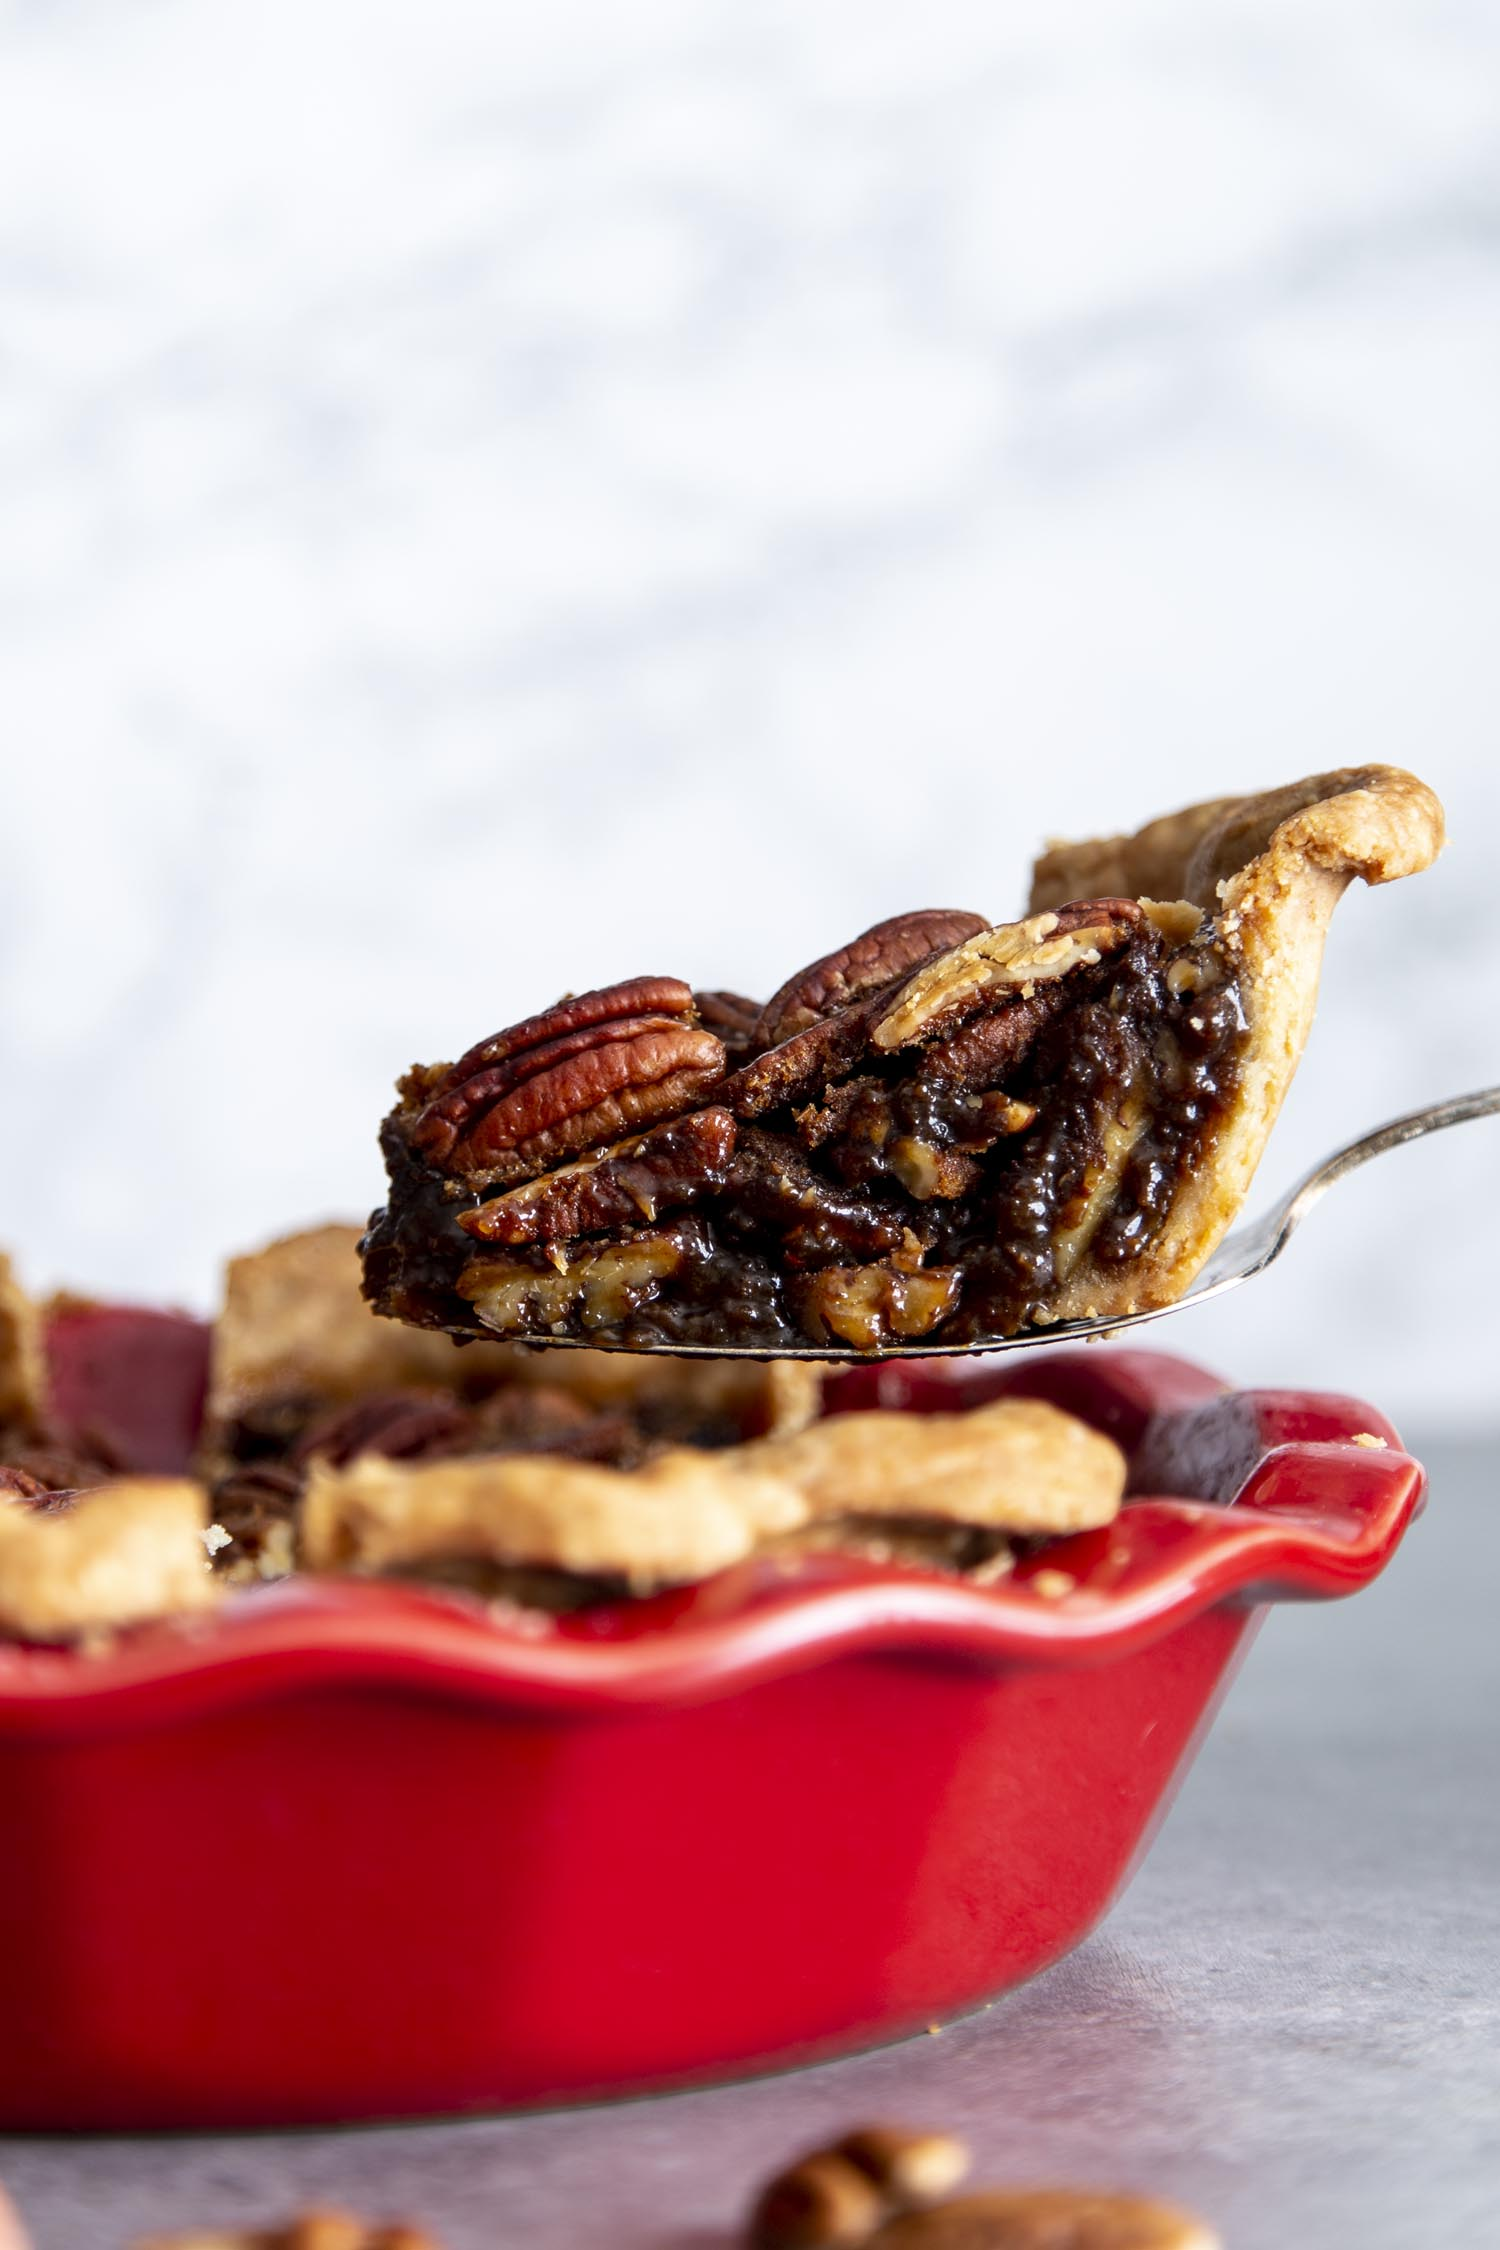 Rich, sweet decadent Pecan pie.